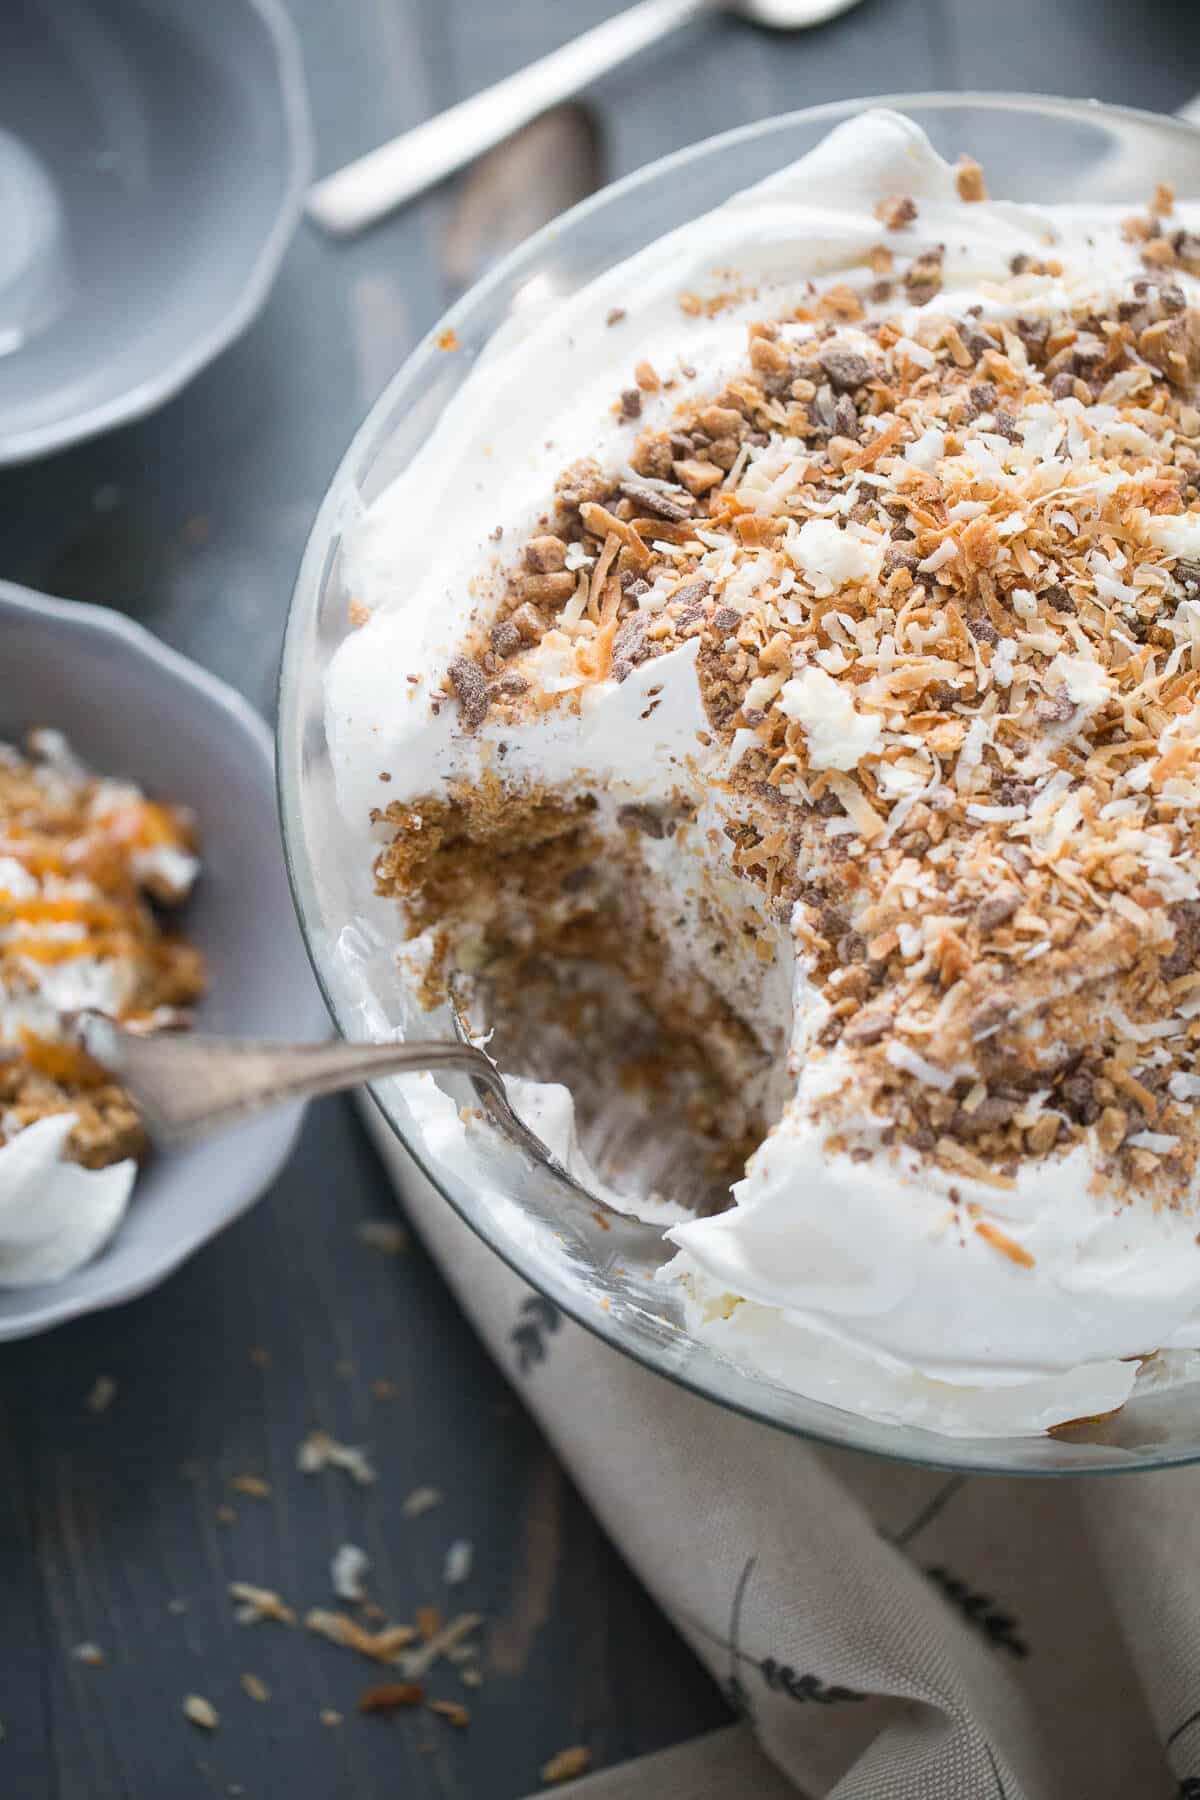 This recipe for carrot cake trifle will satisfy your carrot cake craving but with half the work!